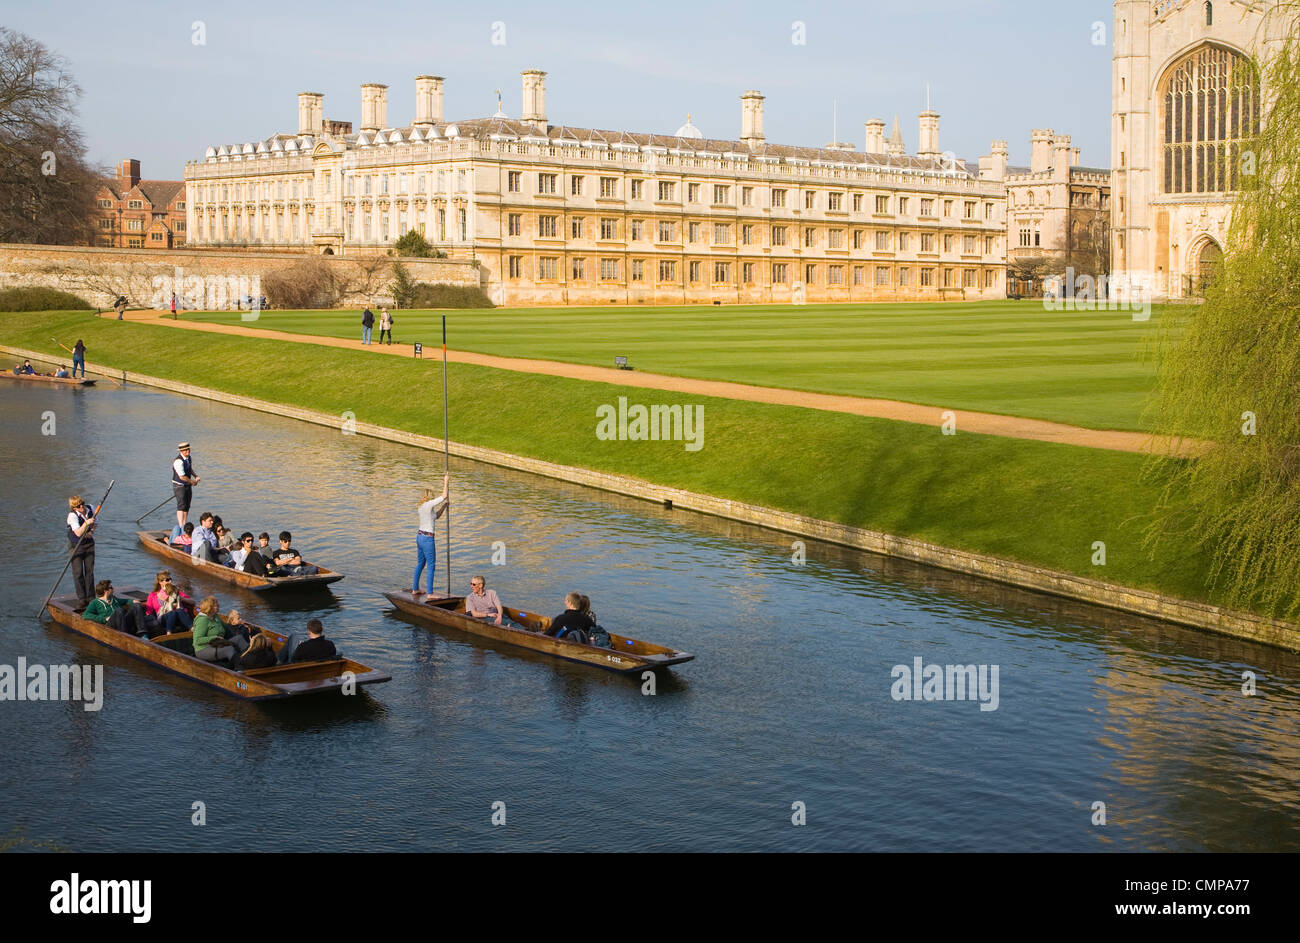 Punting on the River Cam, Cambridge, England - Stock Image